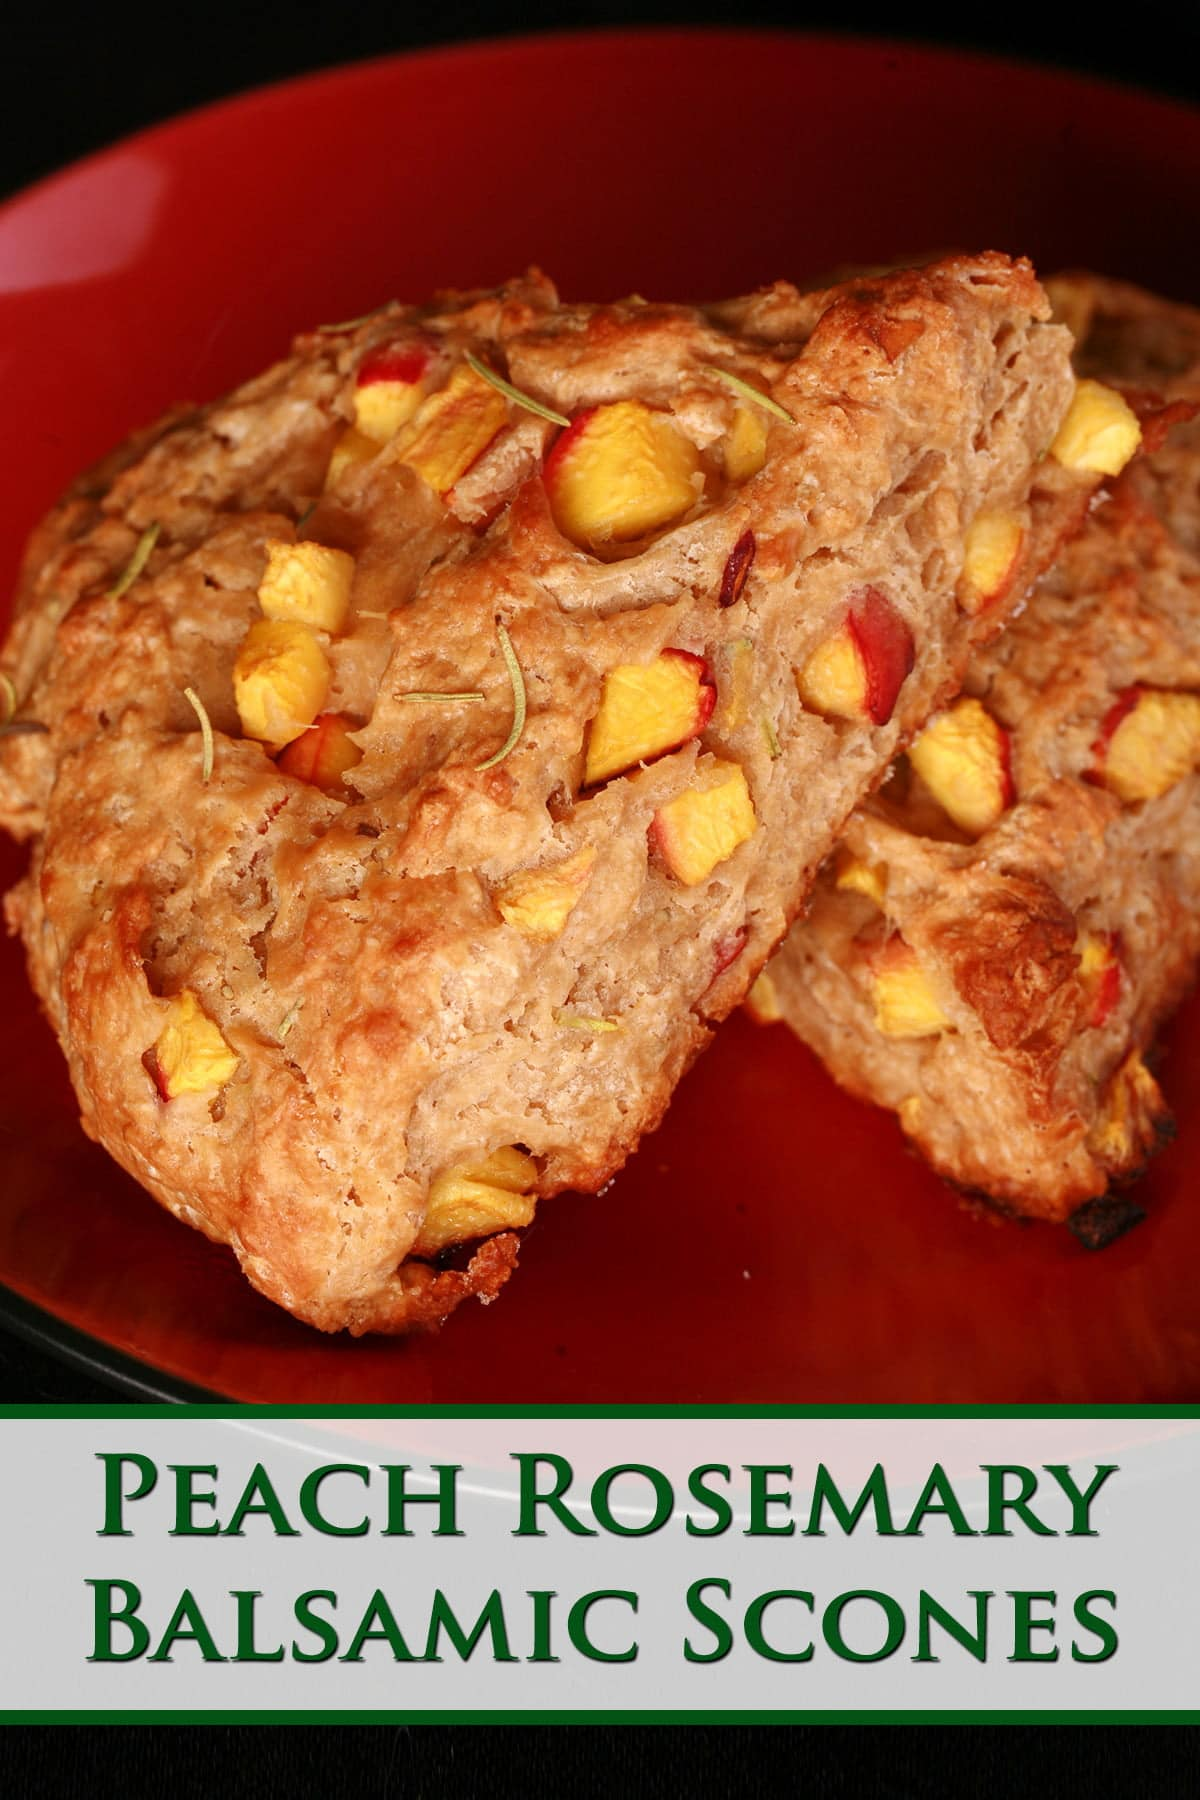 Two wedges of Rosemary Peach Balsamic Scones on a red plate. The scones are studded with visible chunks of peach.